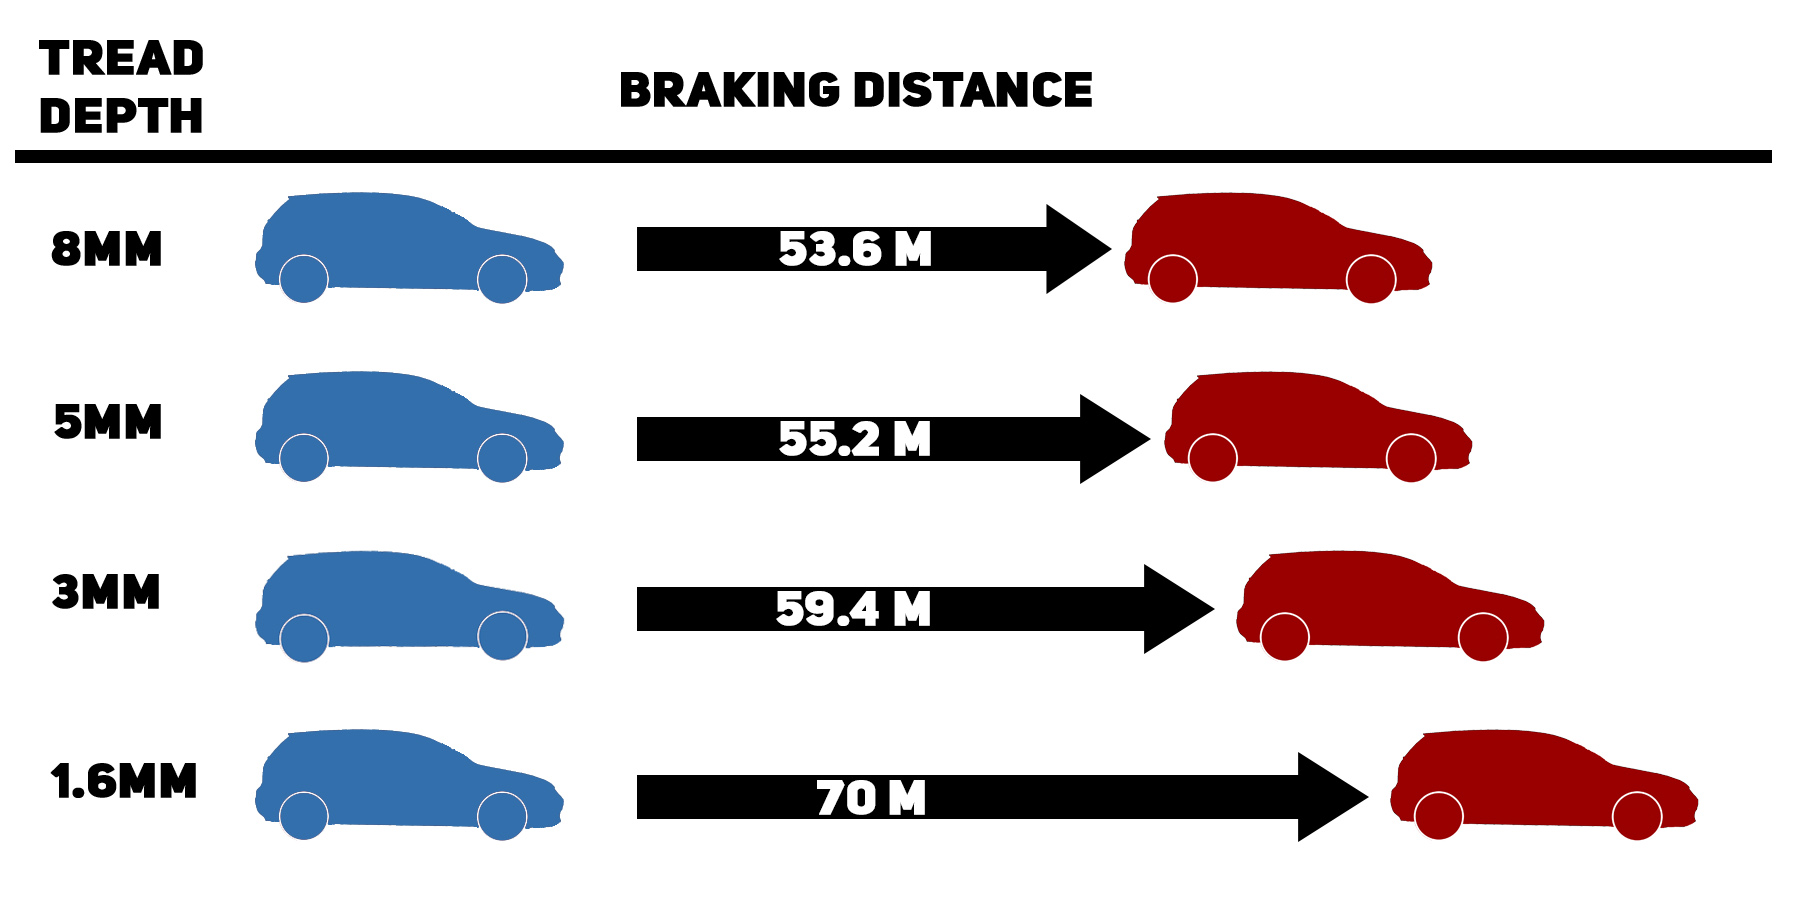 A chart showing braking distances based on tread depth.